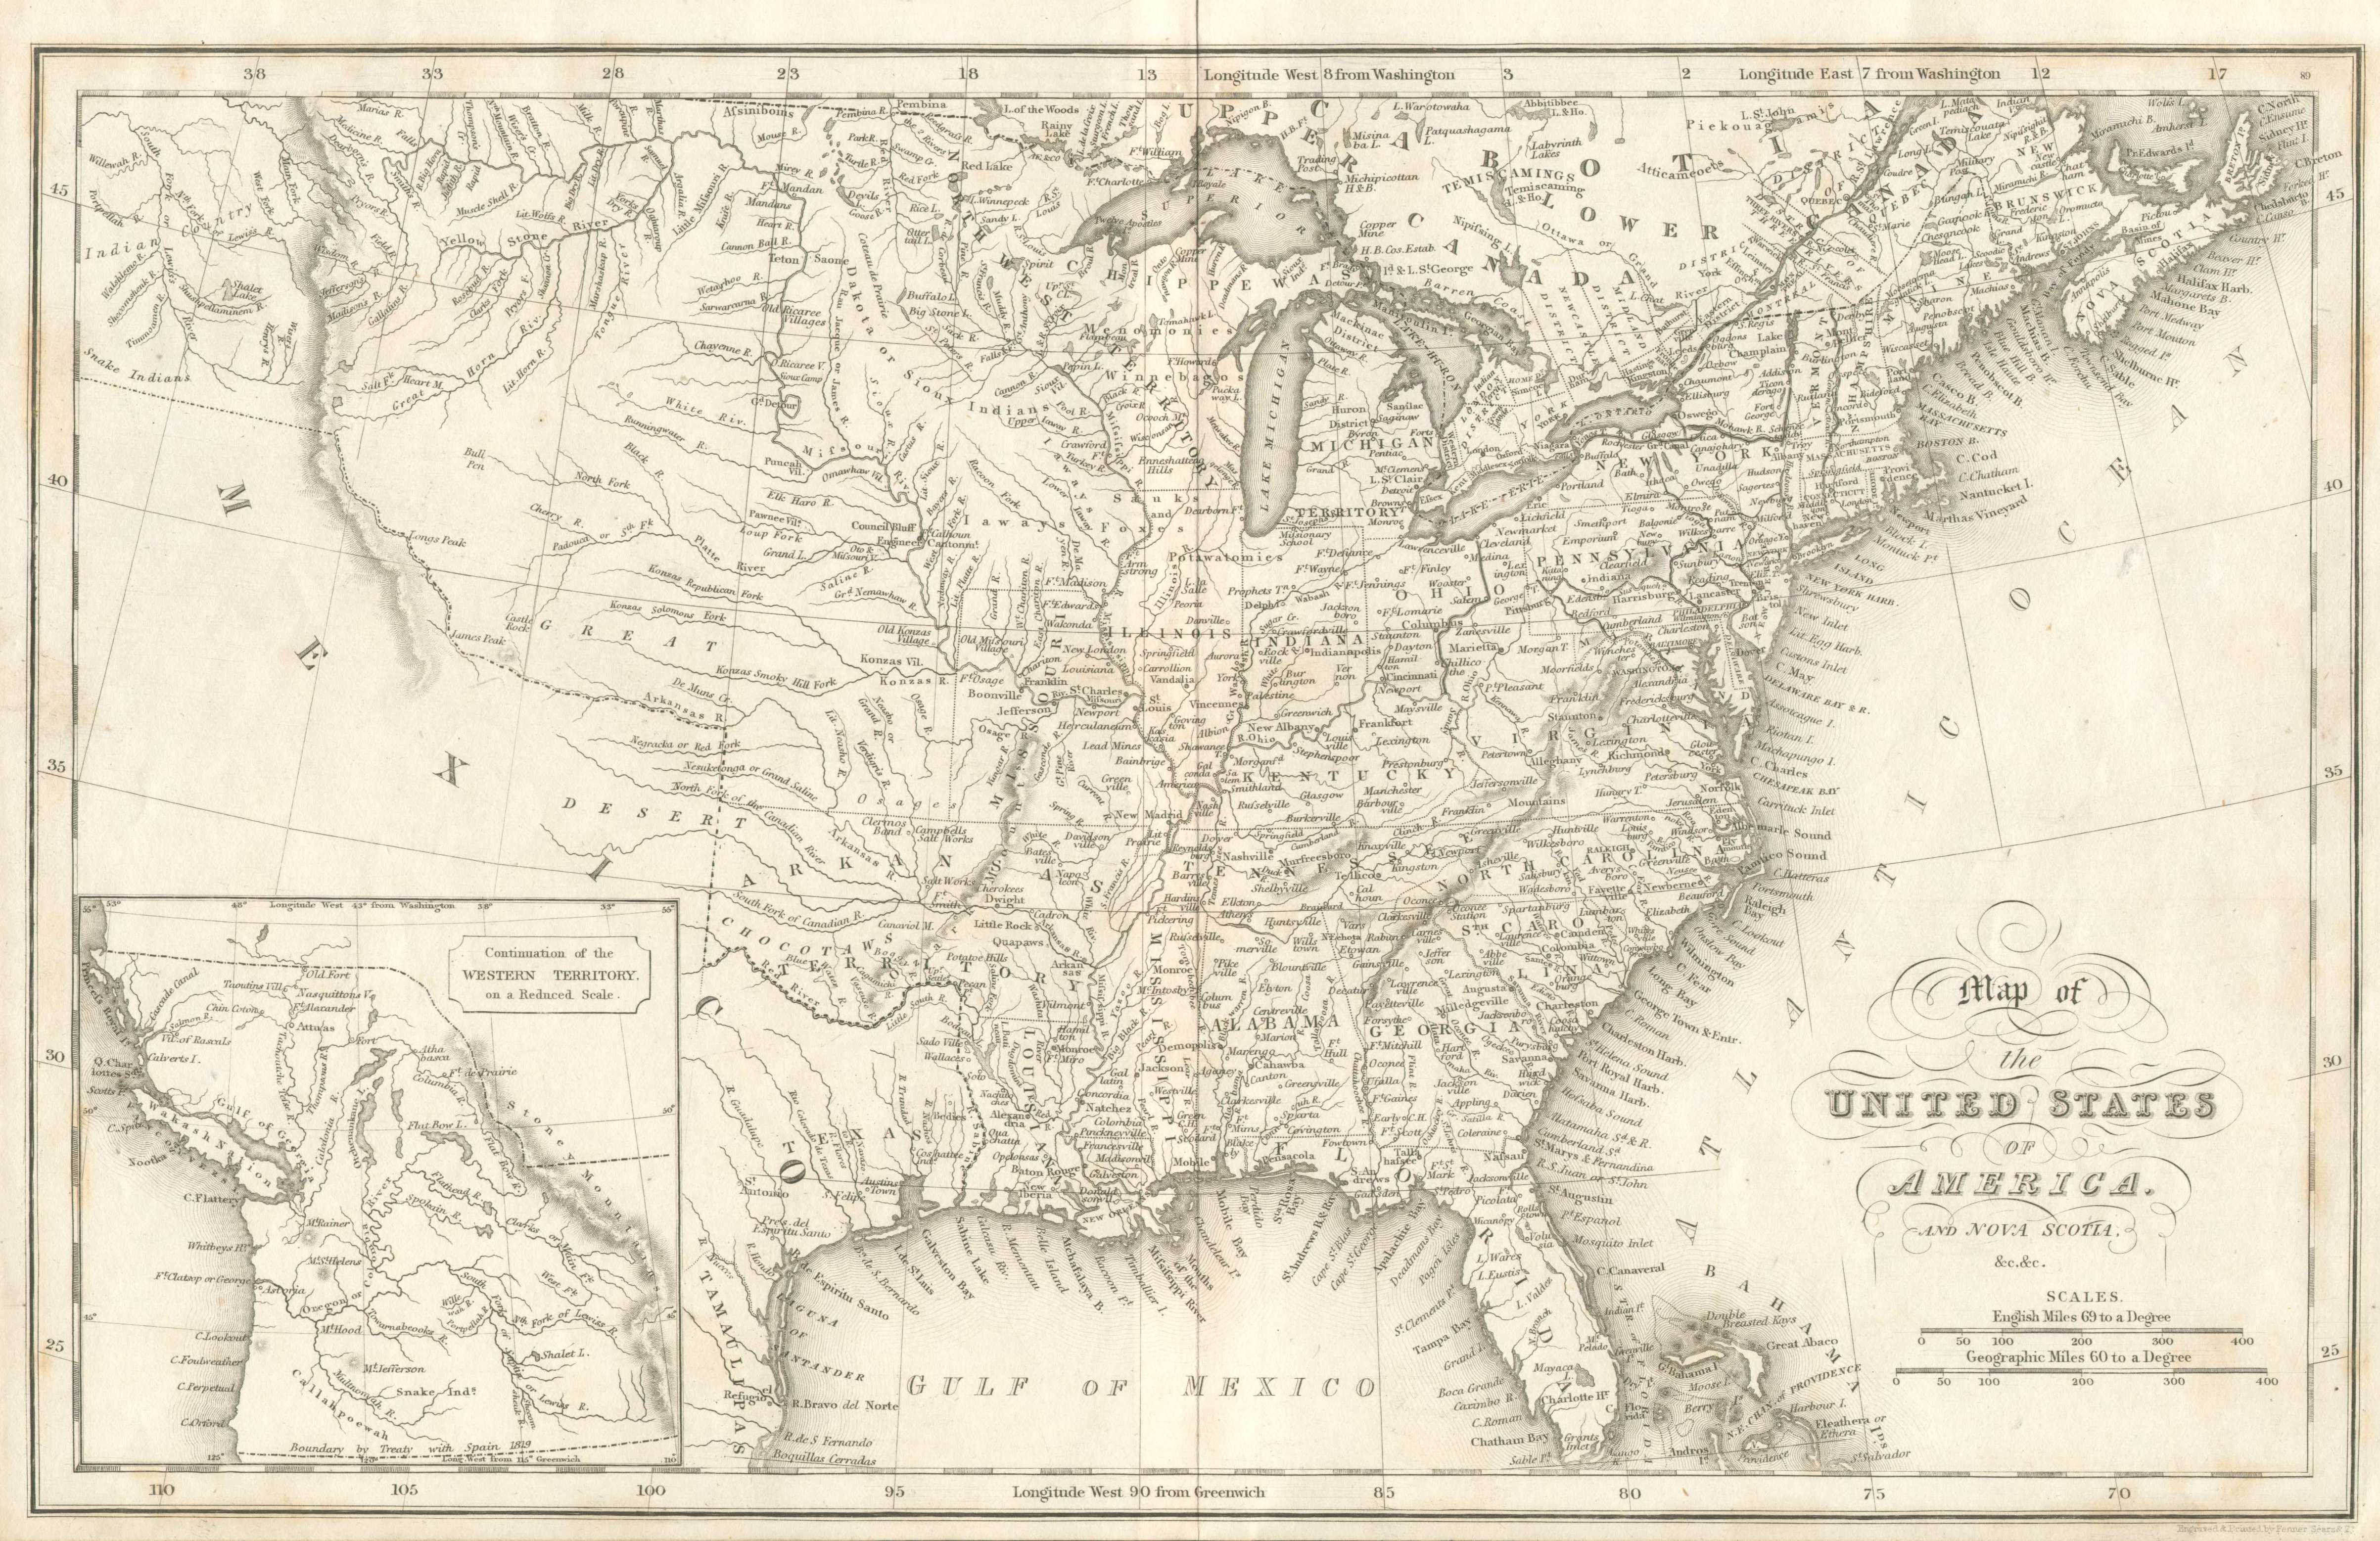 1832 12 map of the united states of america and nova scotia c c engraved printed by fenner sears co this map is almost identical to map 1820 1